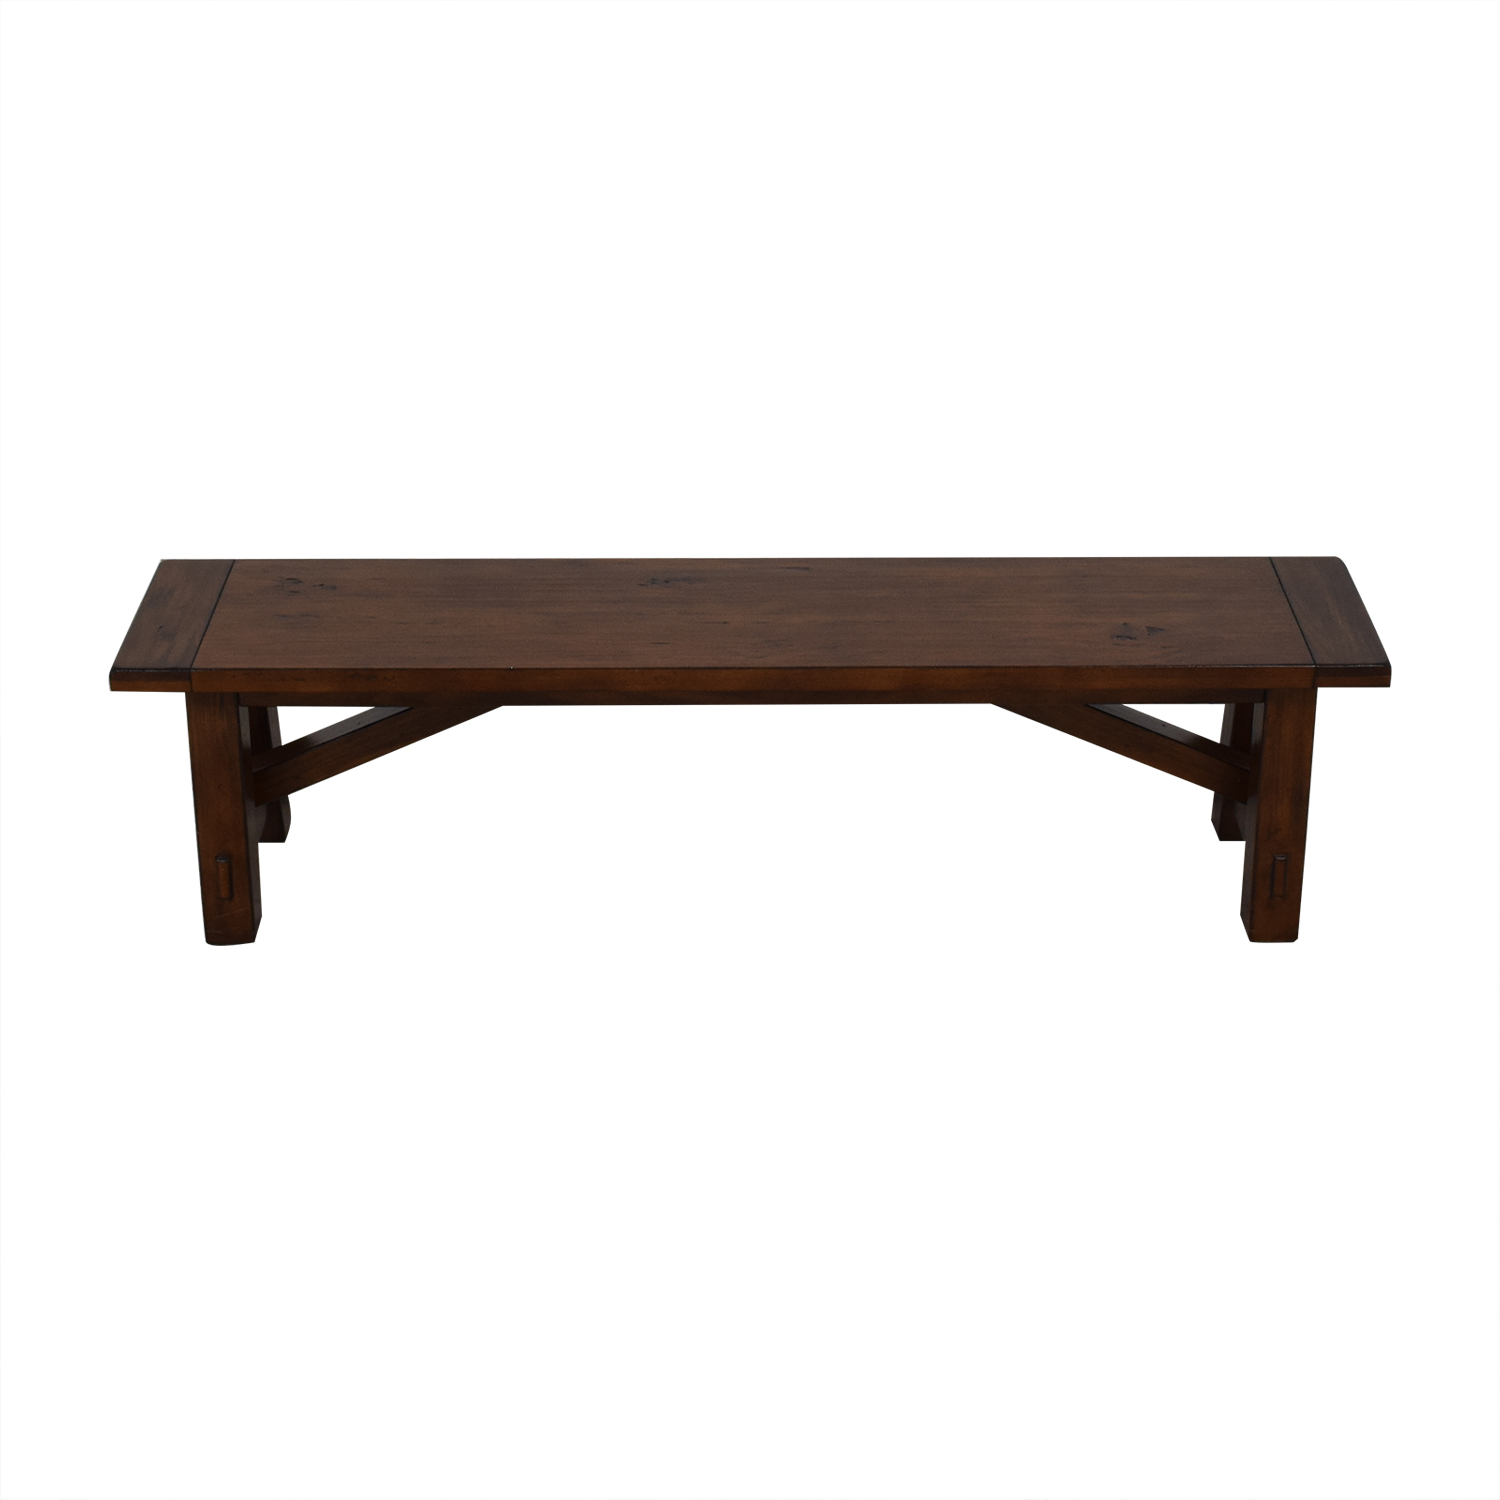 Pottery Barn Pottery Barn Toscana Dining Bench for sale